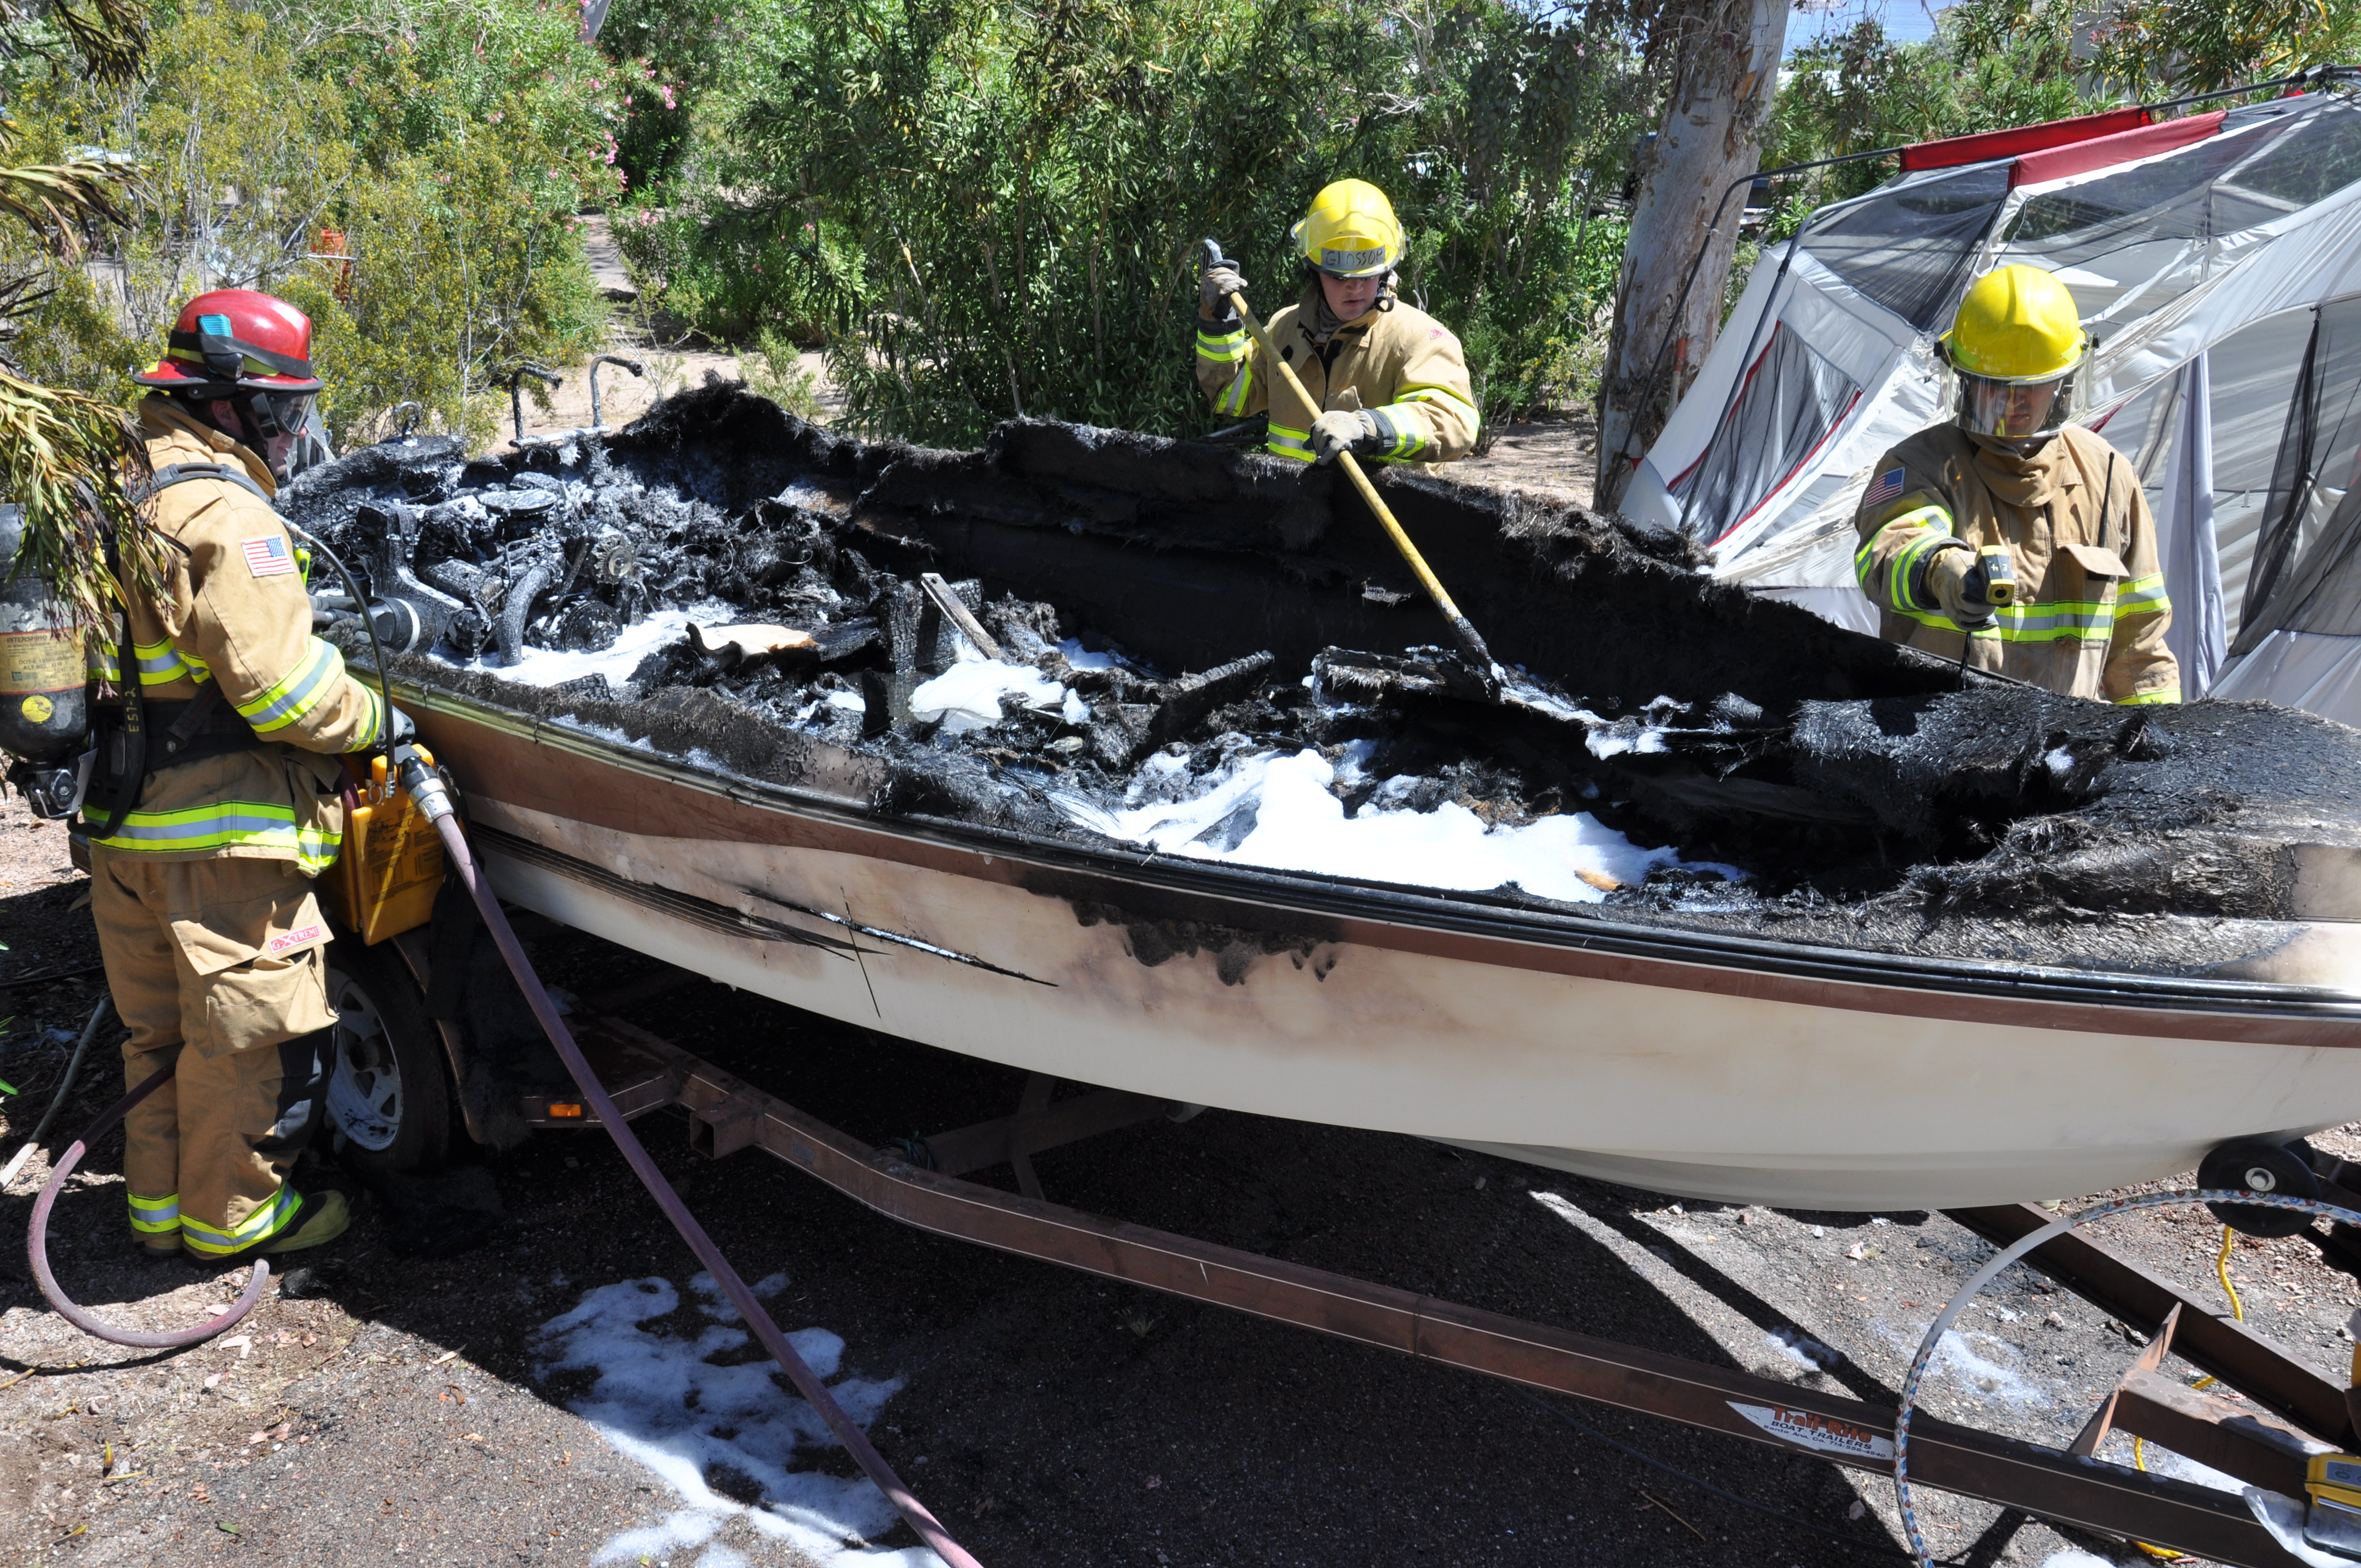 BOULDER CITY, Nev. (Apr. 22, 2011) - National Park Service rangers and Boulder City firefighters extinguish a boat fire located in the Boulder Beach campground caused by ignited fuel vapors. No injuries.